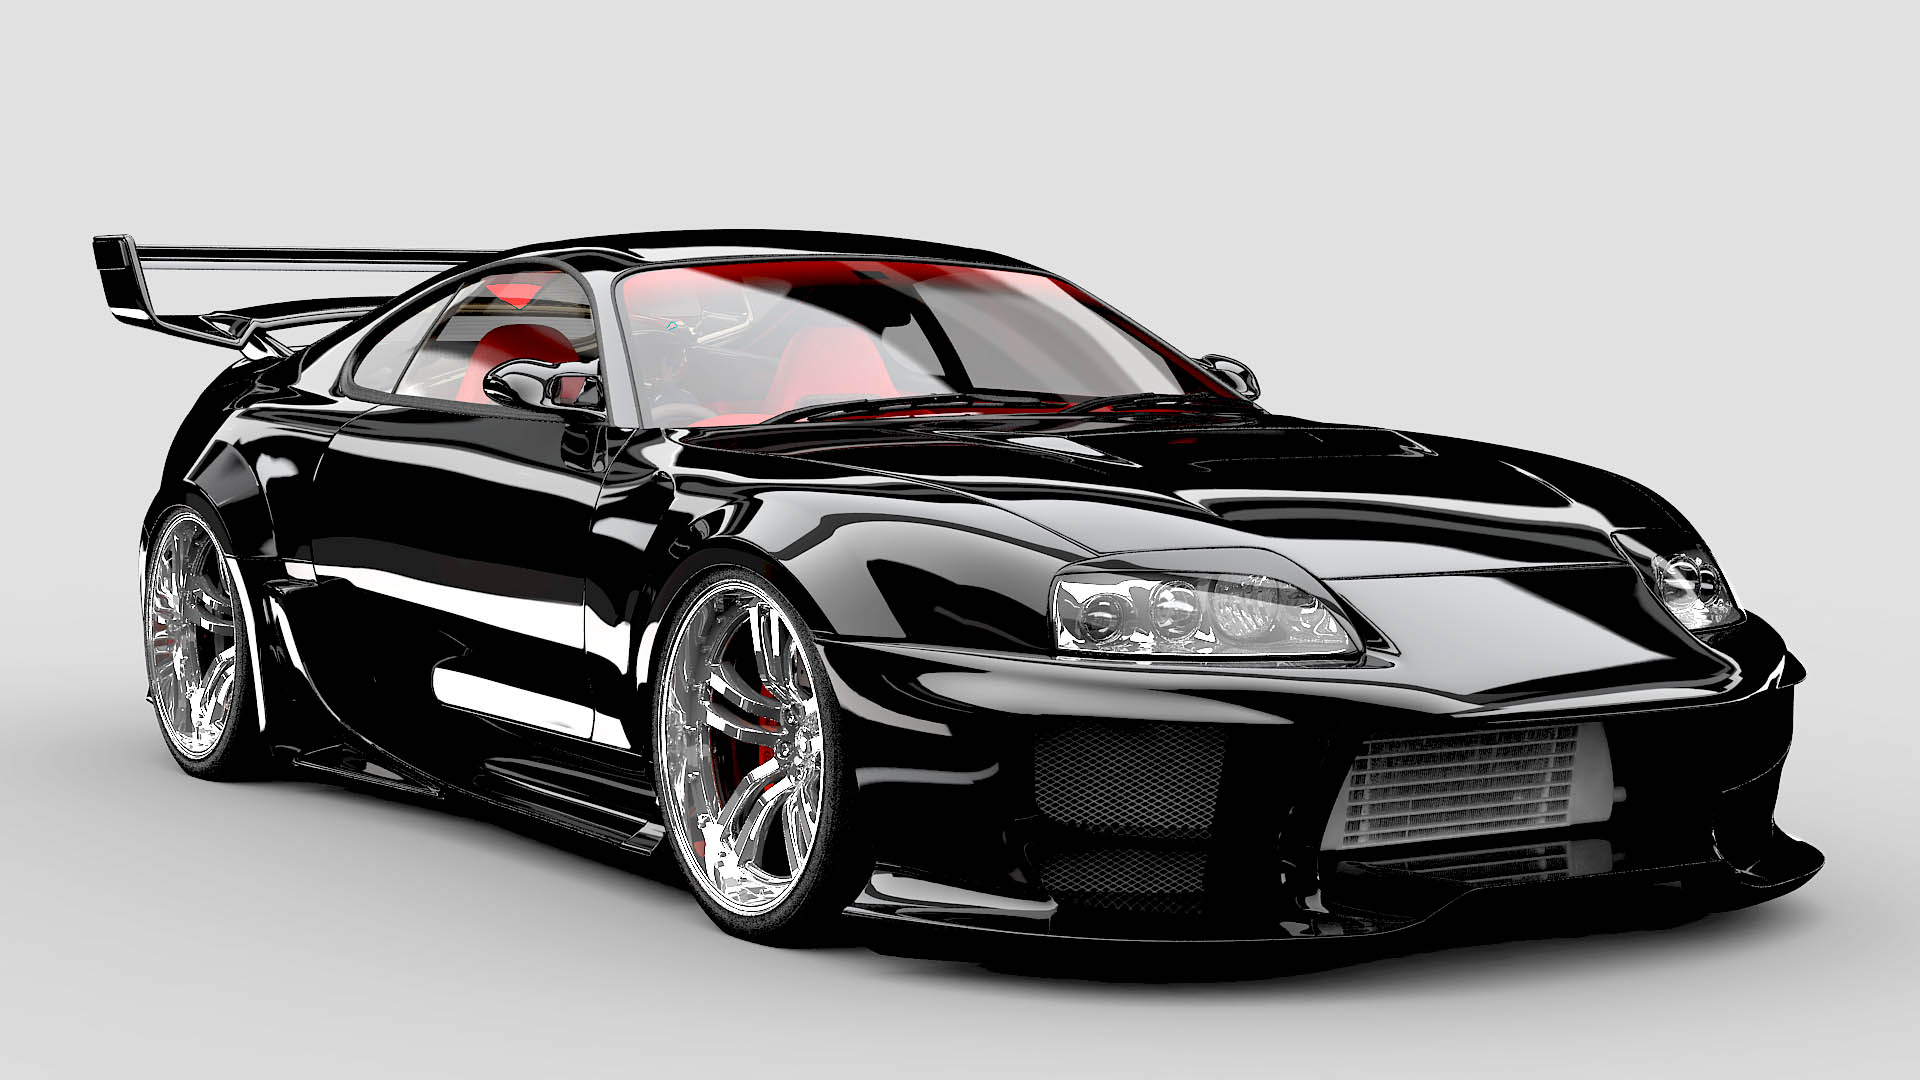 Toyota Supra Wallpaper 1920x1080: Custom Toyota Supra Wallpapers